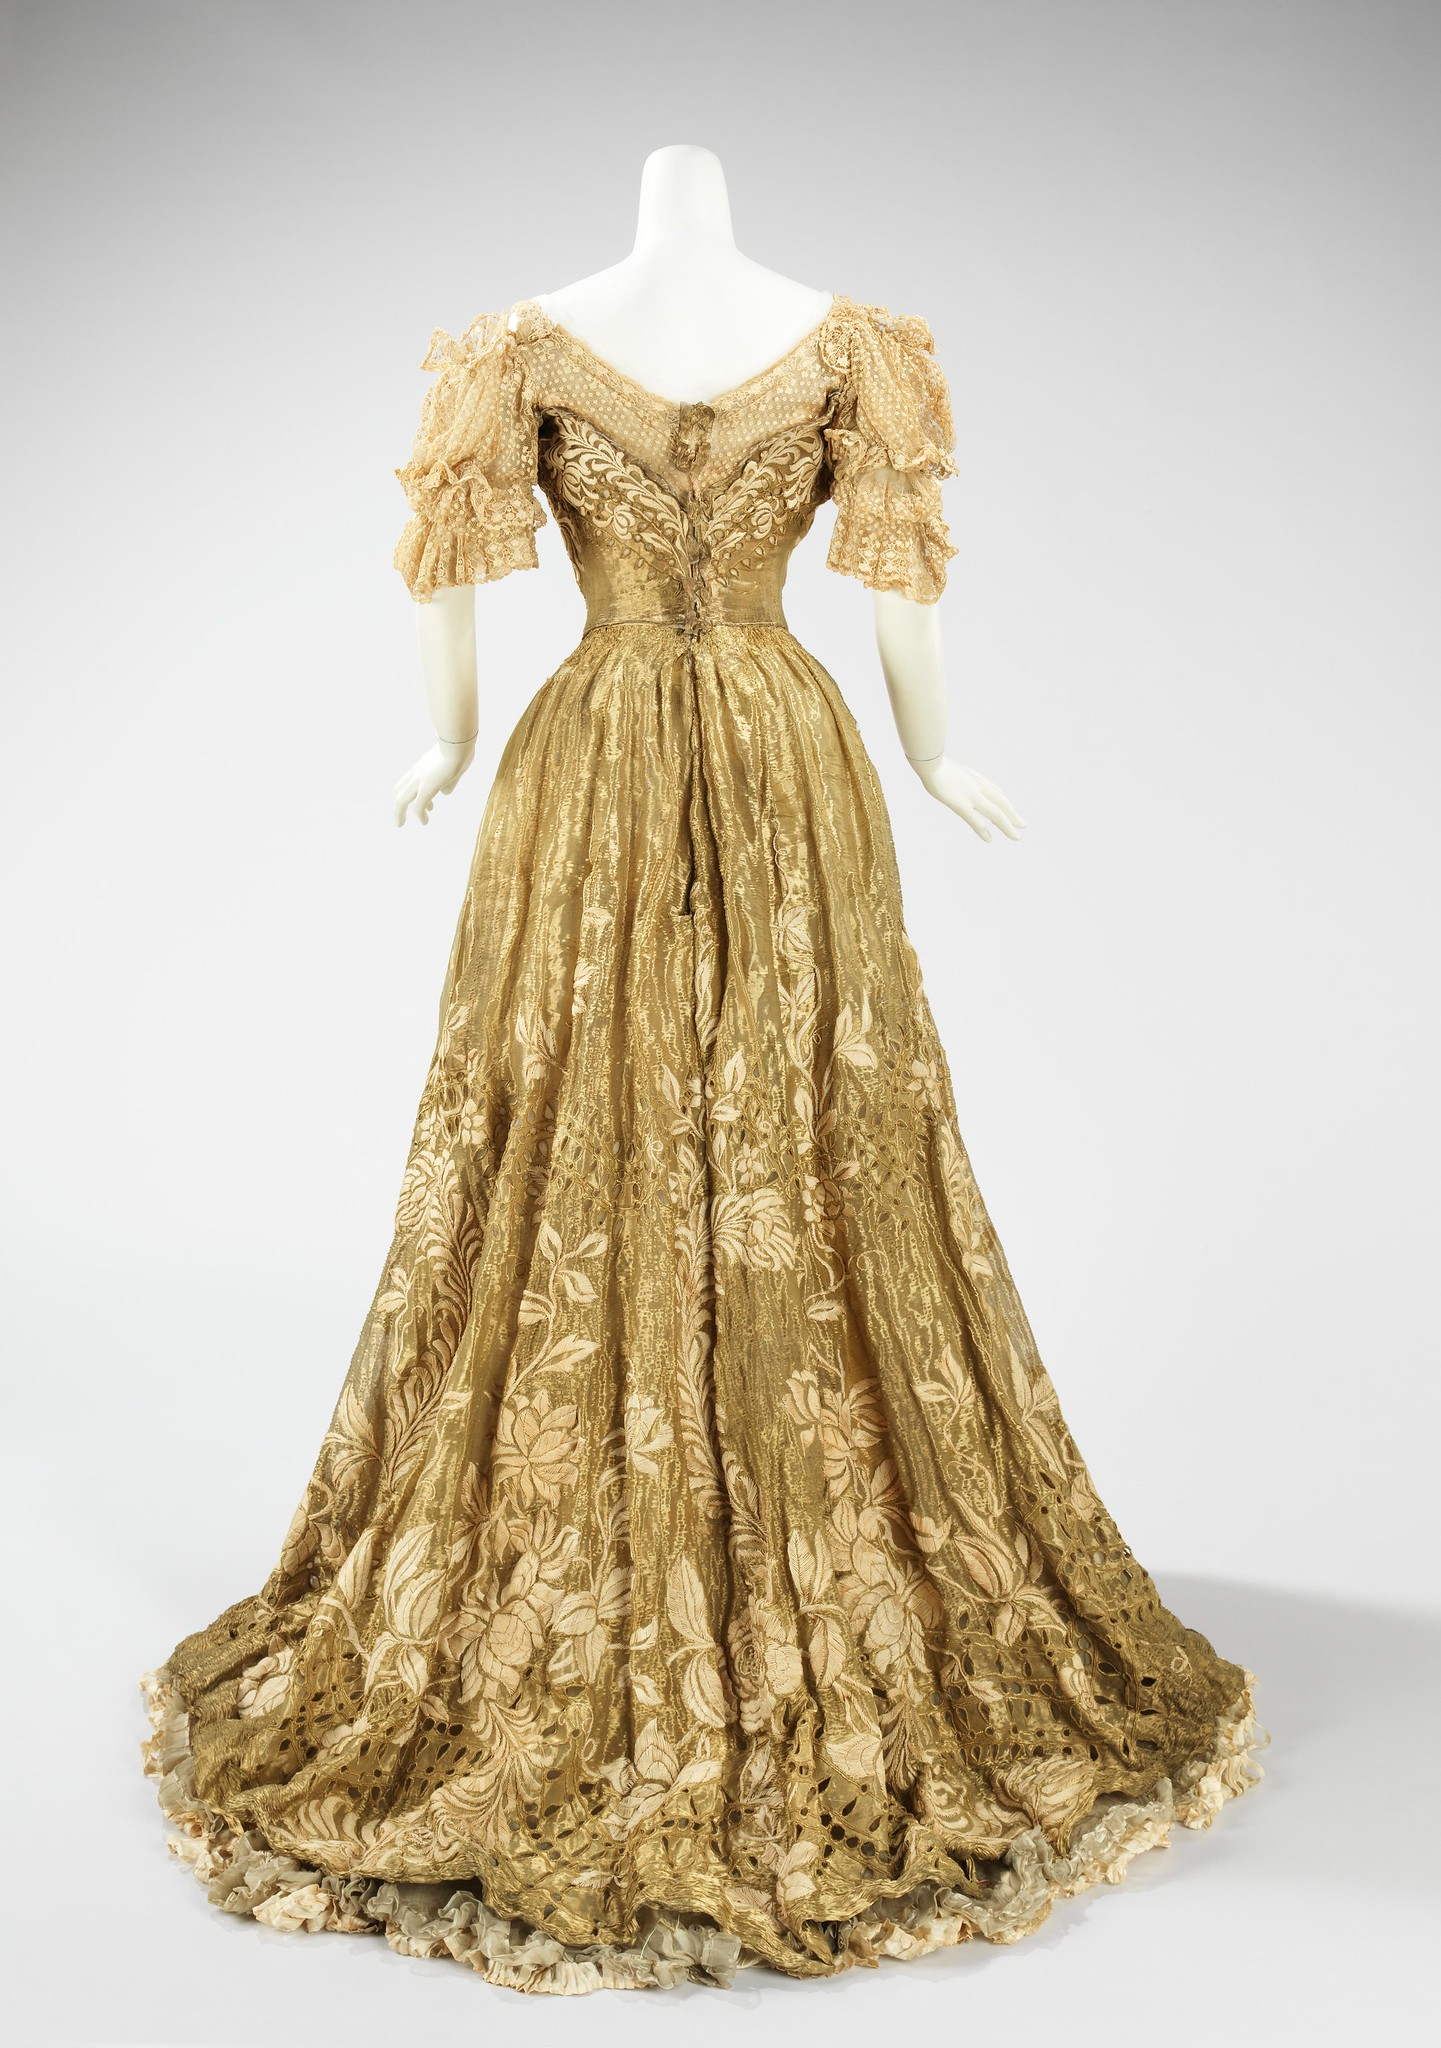 1898 Ball gown. French. Jacques Doucet. Silk, metal, linen. metmuseum